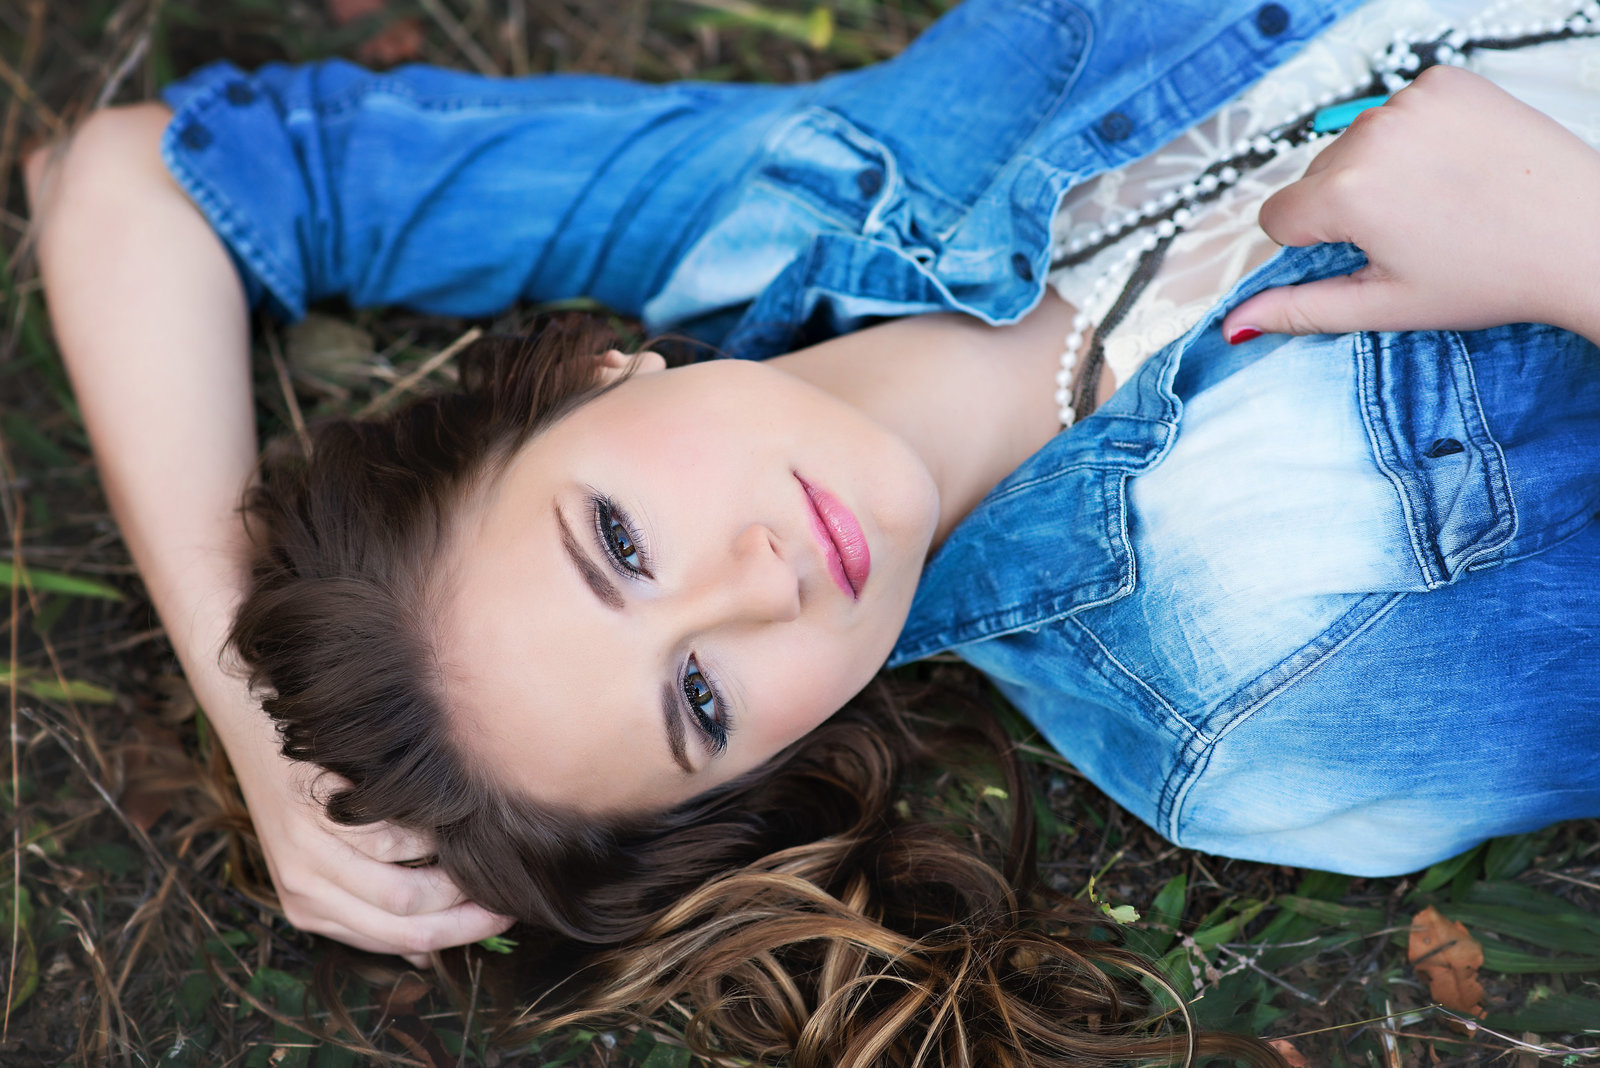 Iowa-high-school-senior-girl-airbrush-makeup-muscatine-iowa-city-quad-cities-fall-leaves